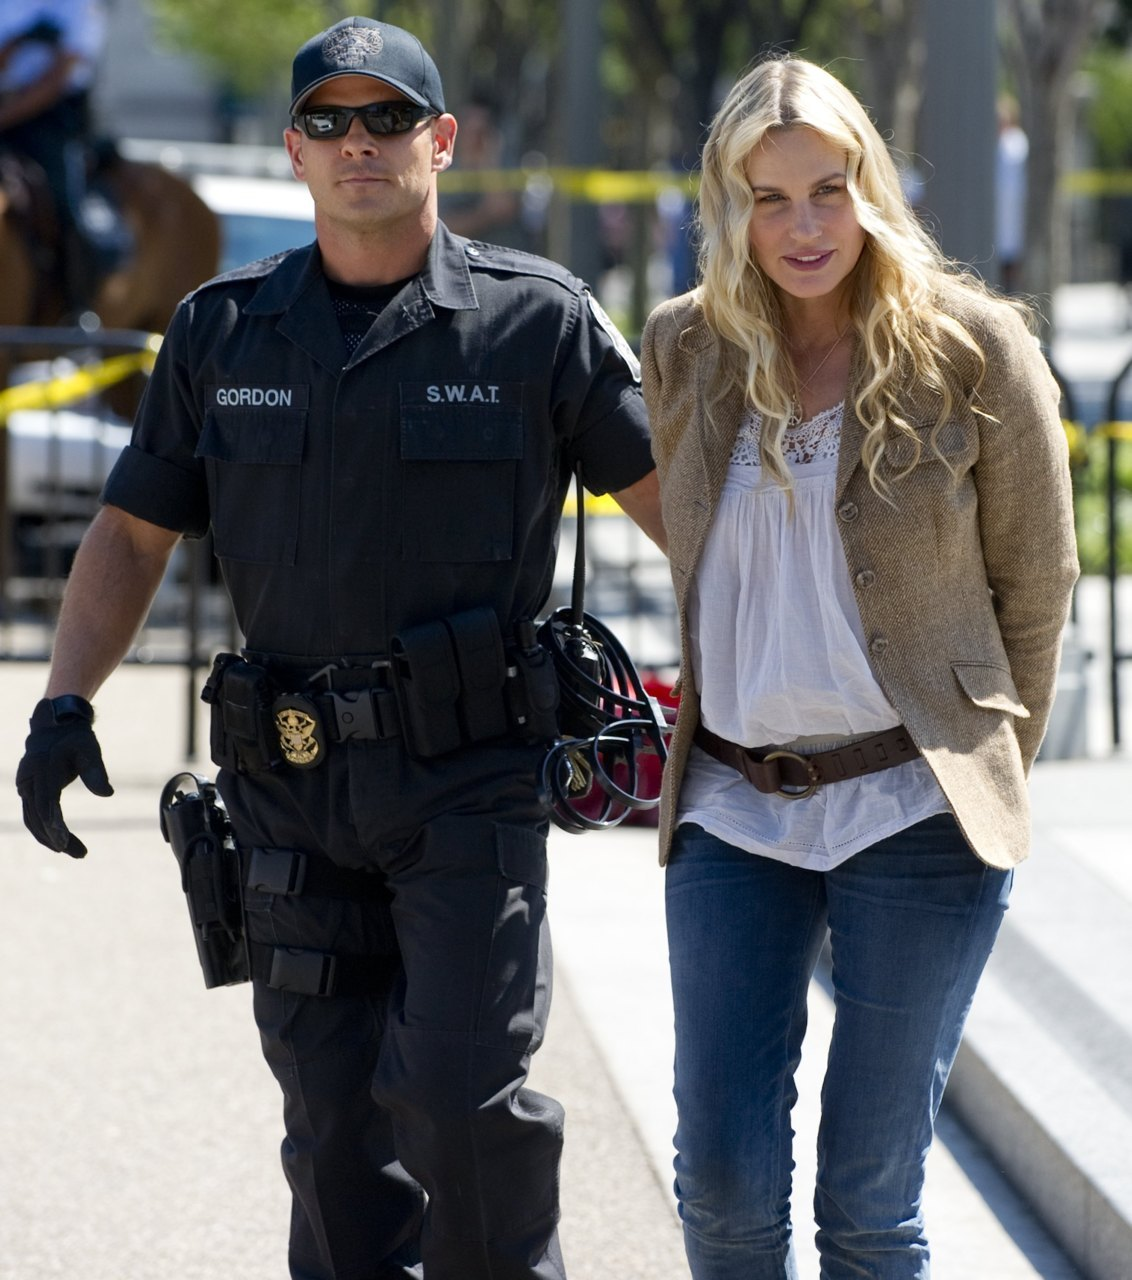 "Daryl Hannah arrested for protesting proposed Canadian oilsands pipelineActress Daryl Hannah, famous for her movie roles in Splash and Wall Street, was among dozens of anti-oilsands activists arrested Tuesday at the White House in ongoing ""sit in"" protests against TransCanada Corp.'s proposed Keystone XL pipeline.""Stop the Keystone pipeline,"" Hannah shouted as she was being handcuffed by SWAT team officers. ""No to the Keystone pipeline."" (Photo: Saul Loeb/AFP/Getty Images)"